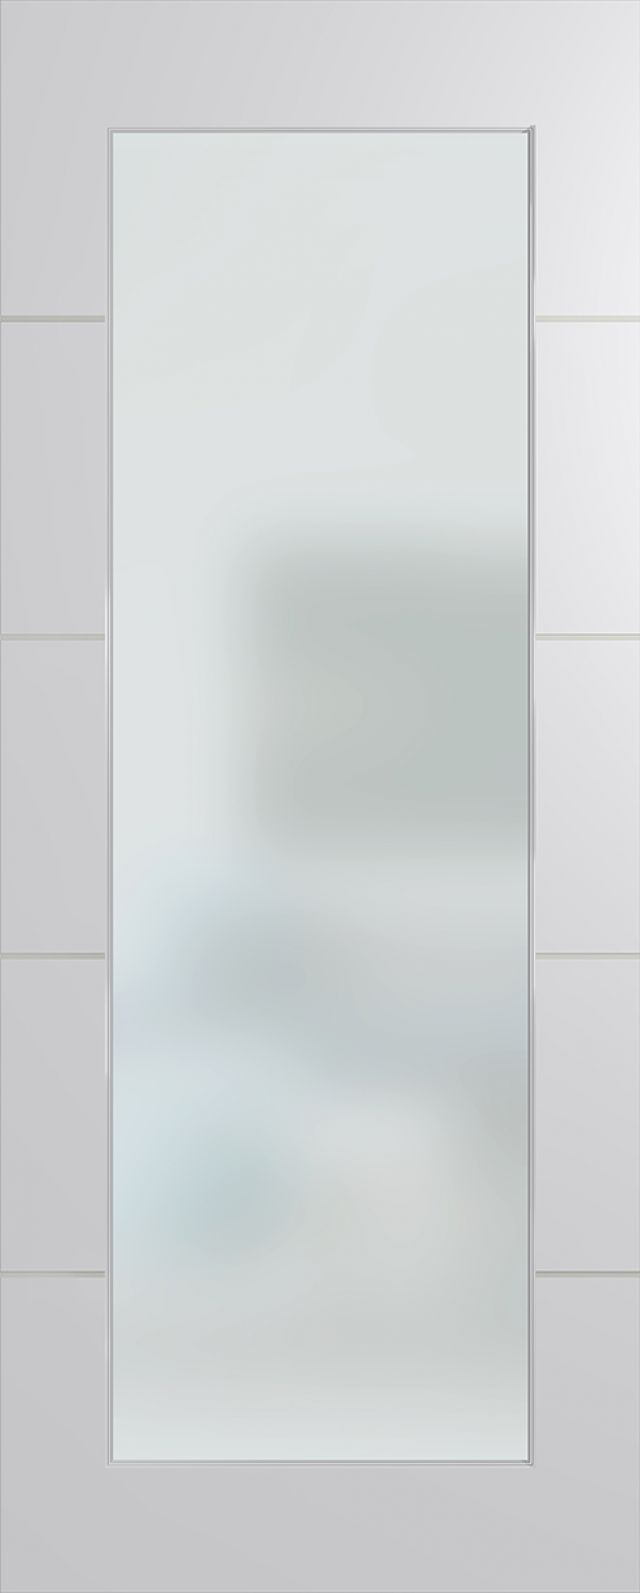 Hlr210 linear internal hume doors hlr210 linear internal customise your door planetlyrics Image collections